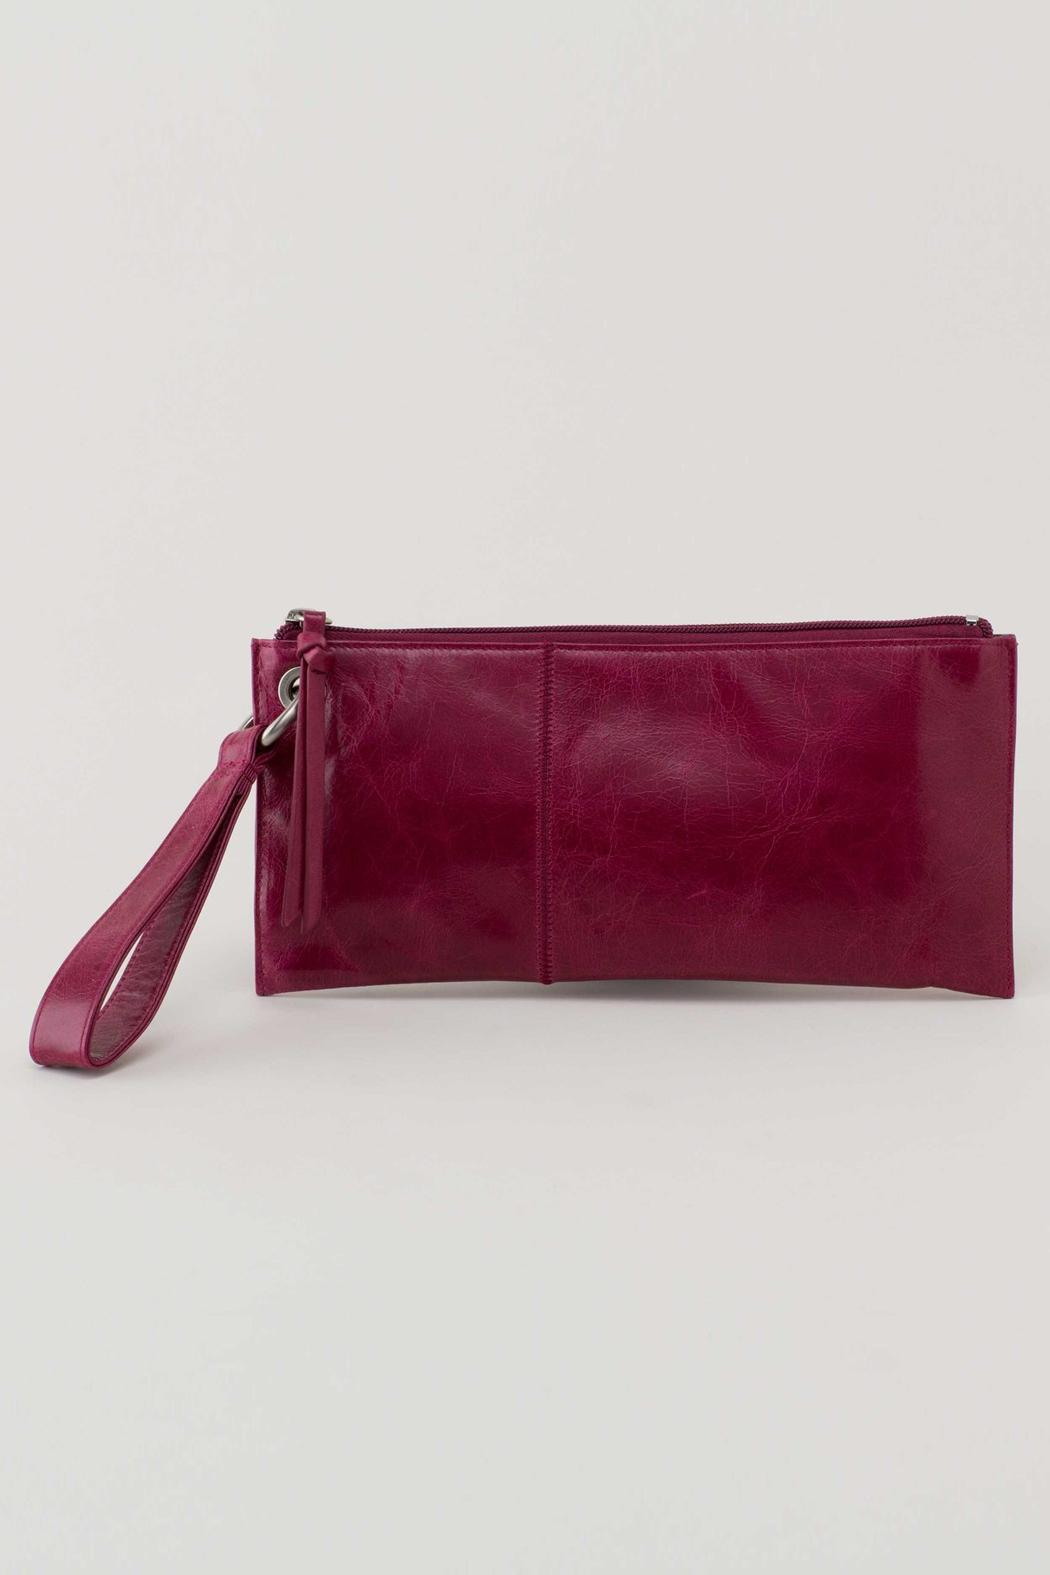 VIDA Leather Statement Clutch - Skills by VIDA gTYhe